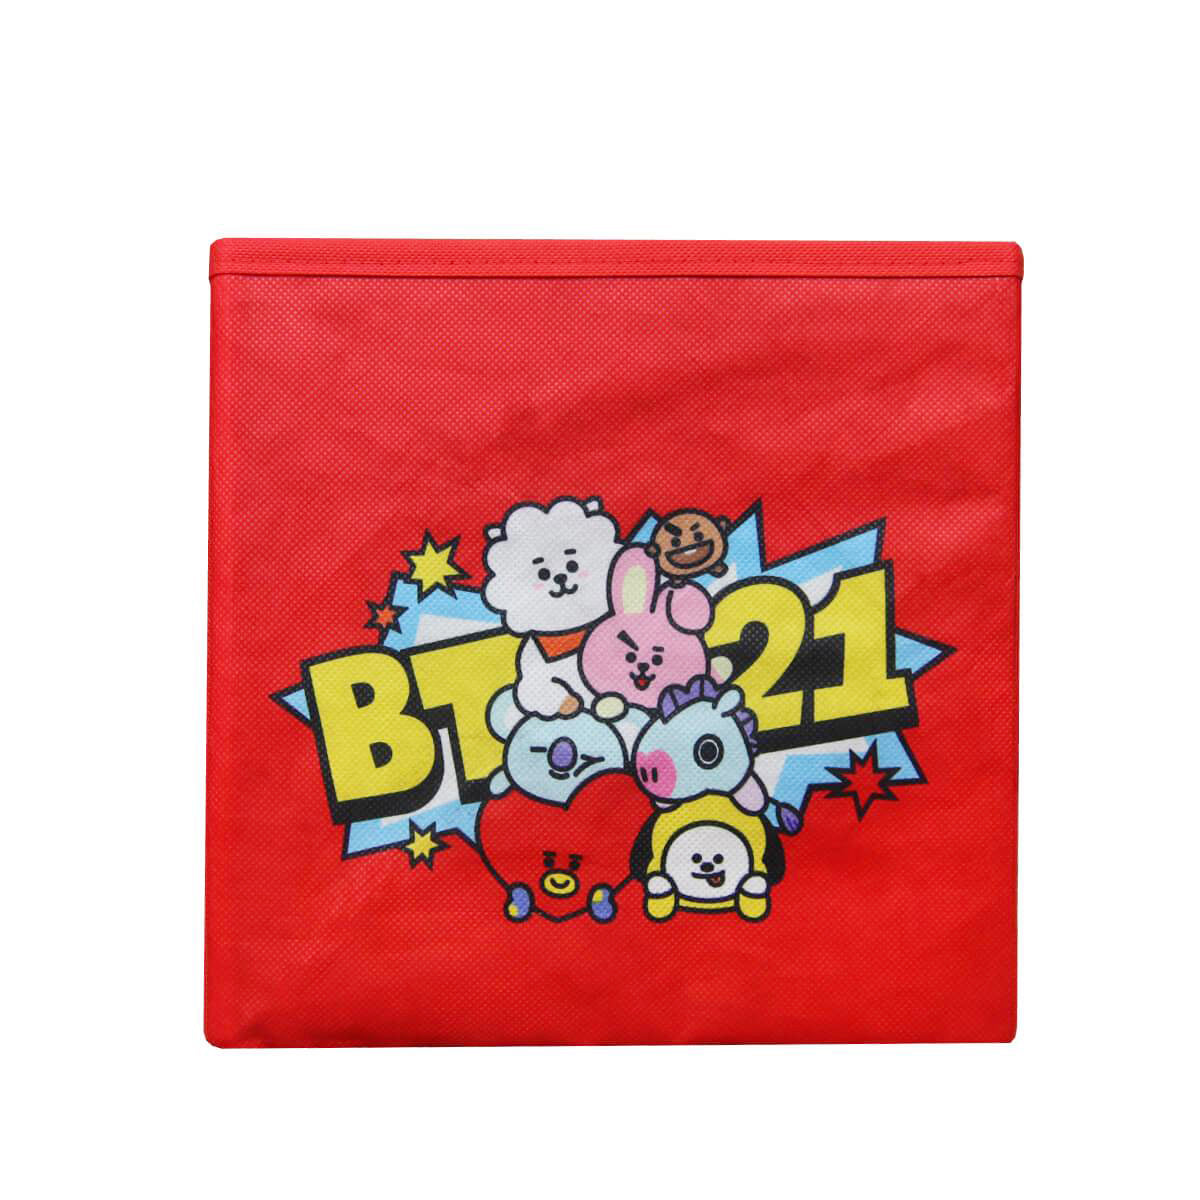 BT21 Collapsible Storage Bin